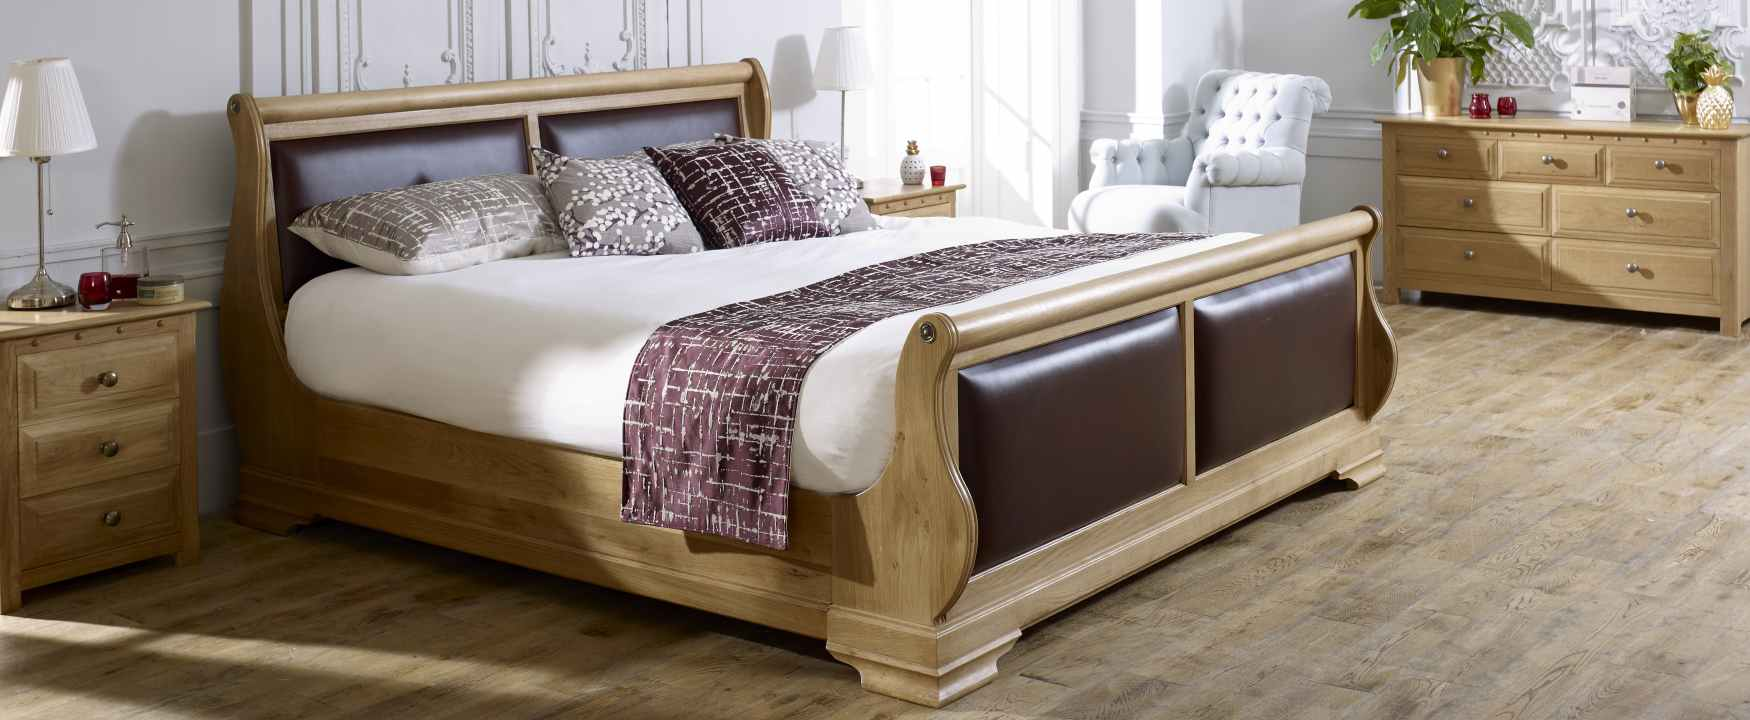 Solid Wood Beds From Revival Beds Handmade Beds